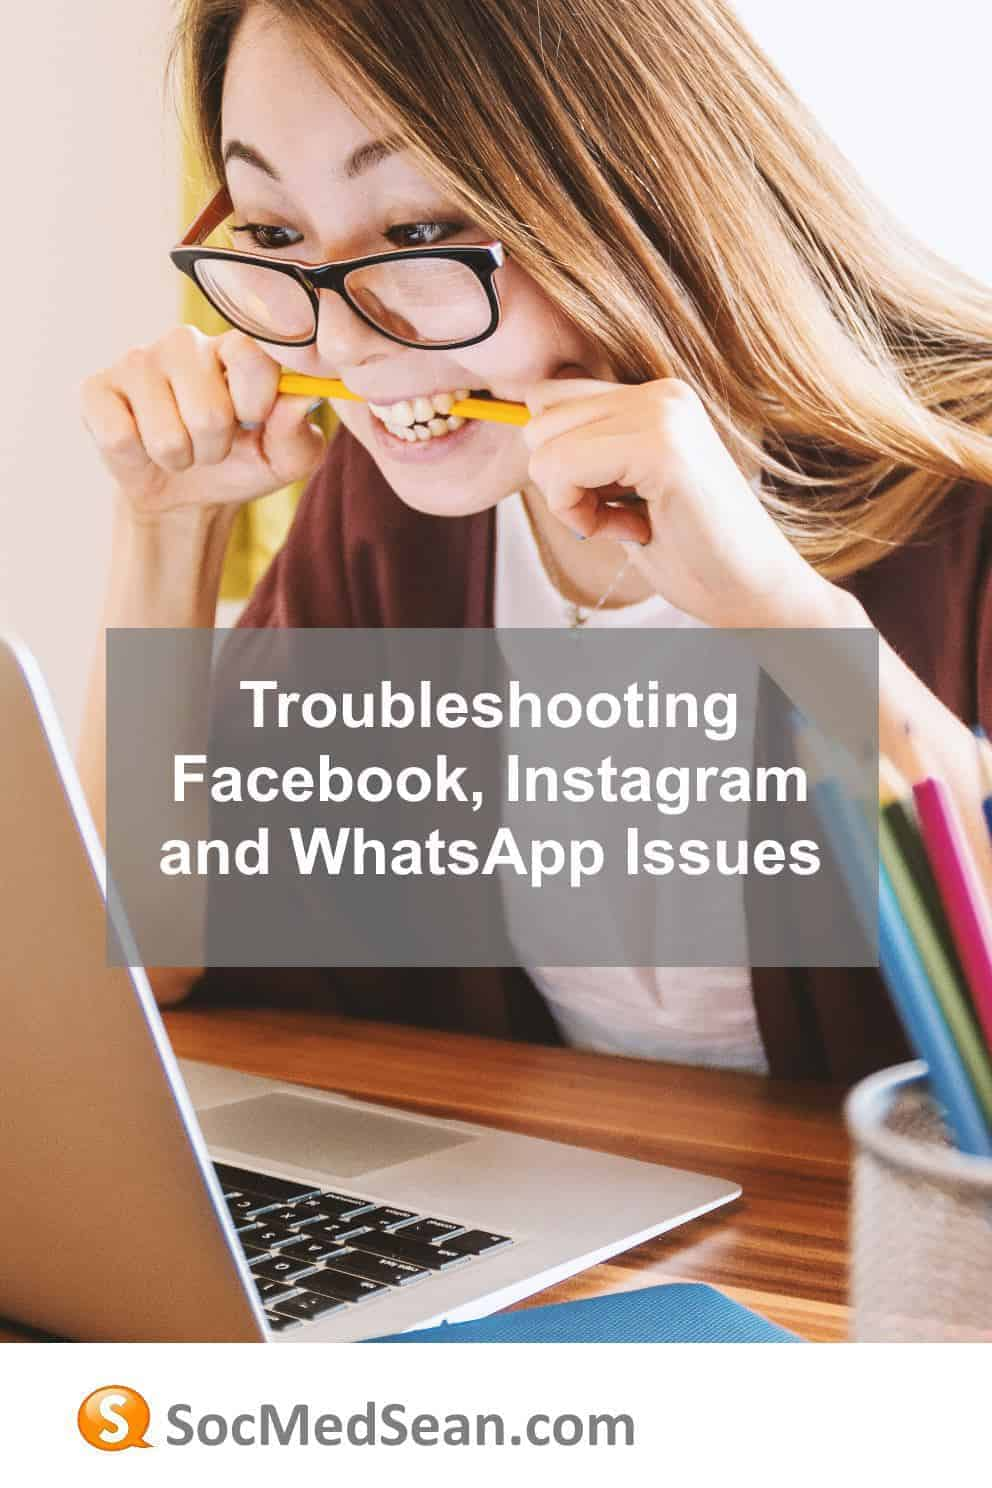 Troubleshooting steps when you're experiencing issues with Facebook, Instagram, or WhatsApp